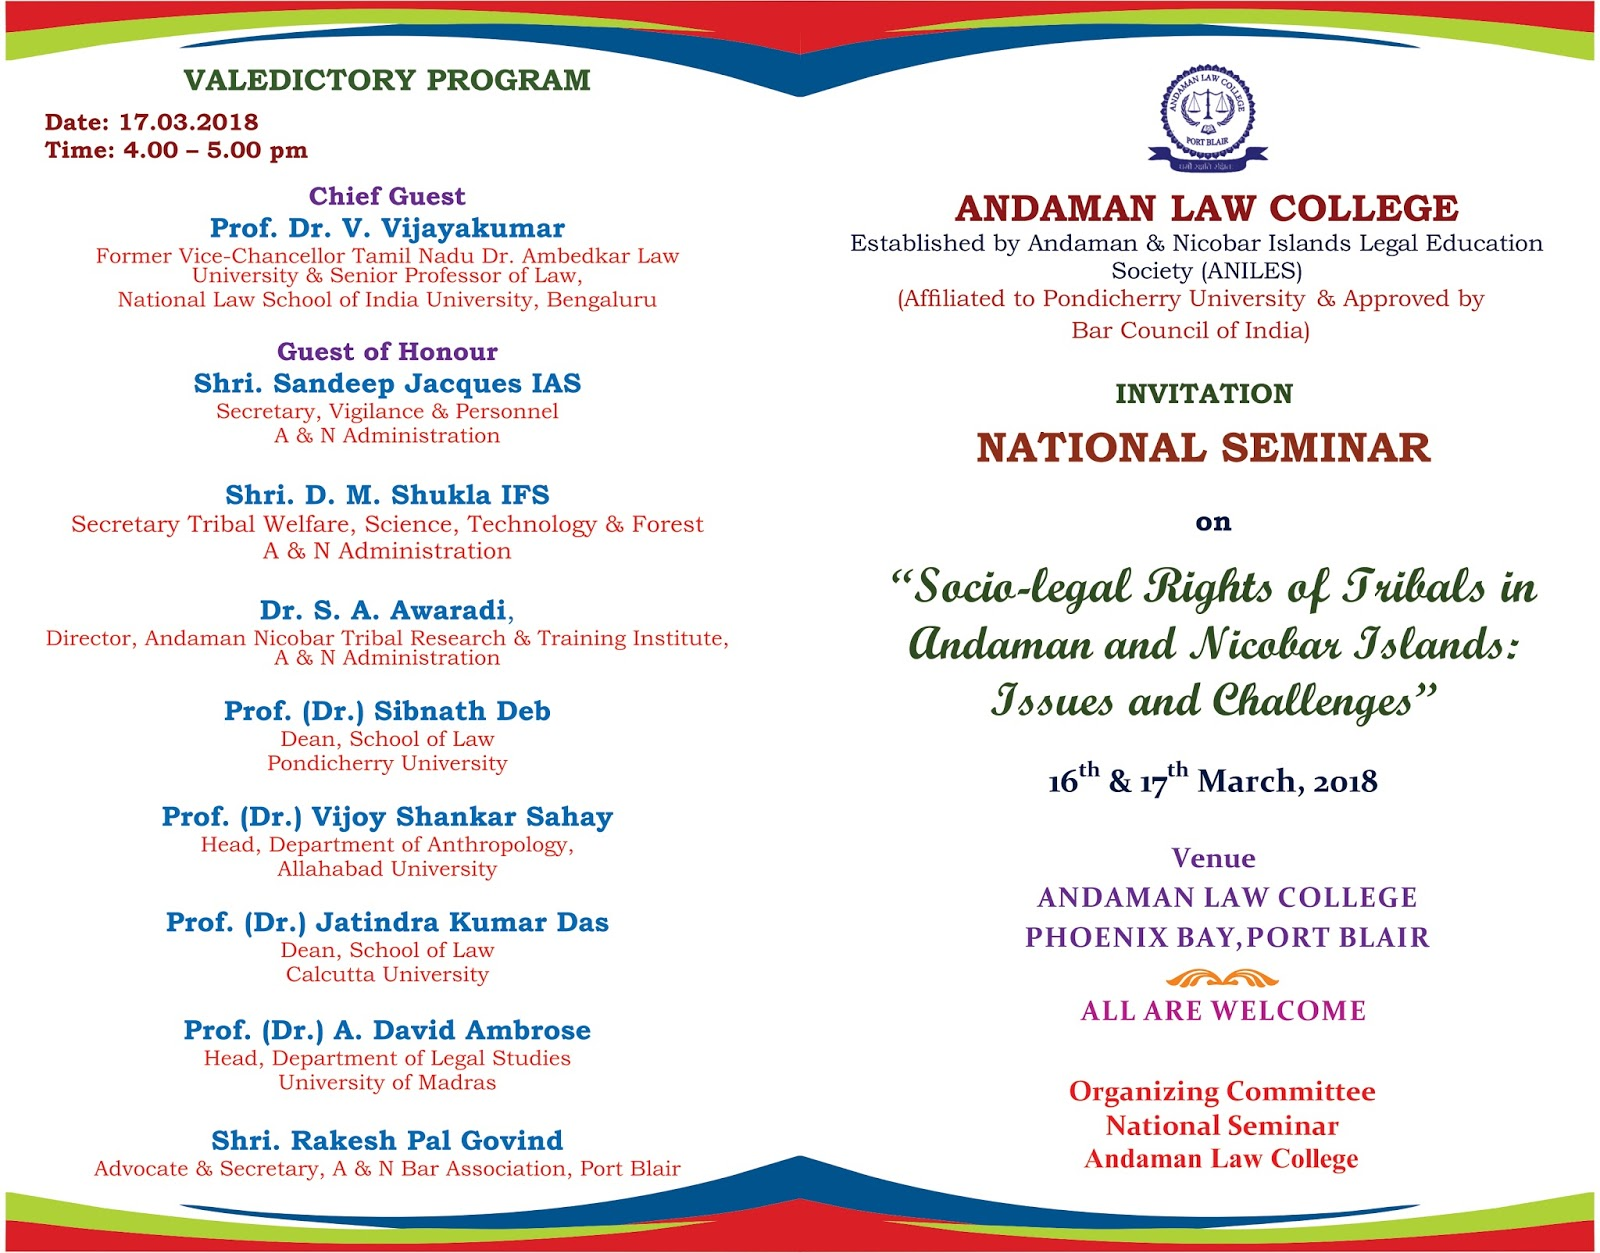 Andaman Law College INVITATION FOR NATIONAL SEMINAR AT ANDAMAN LAW